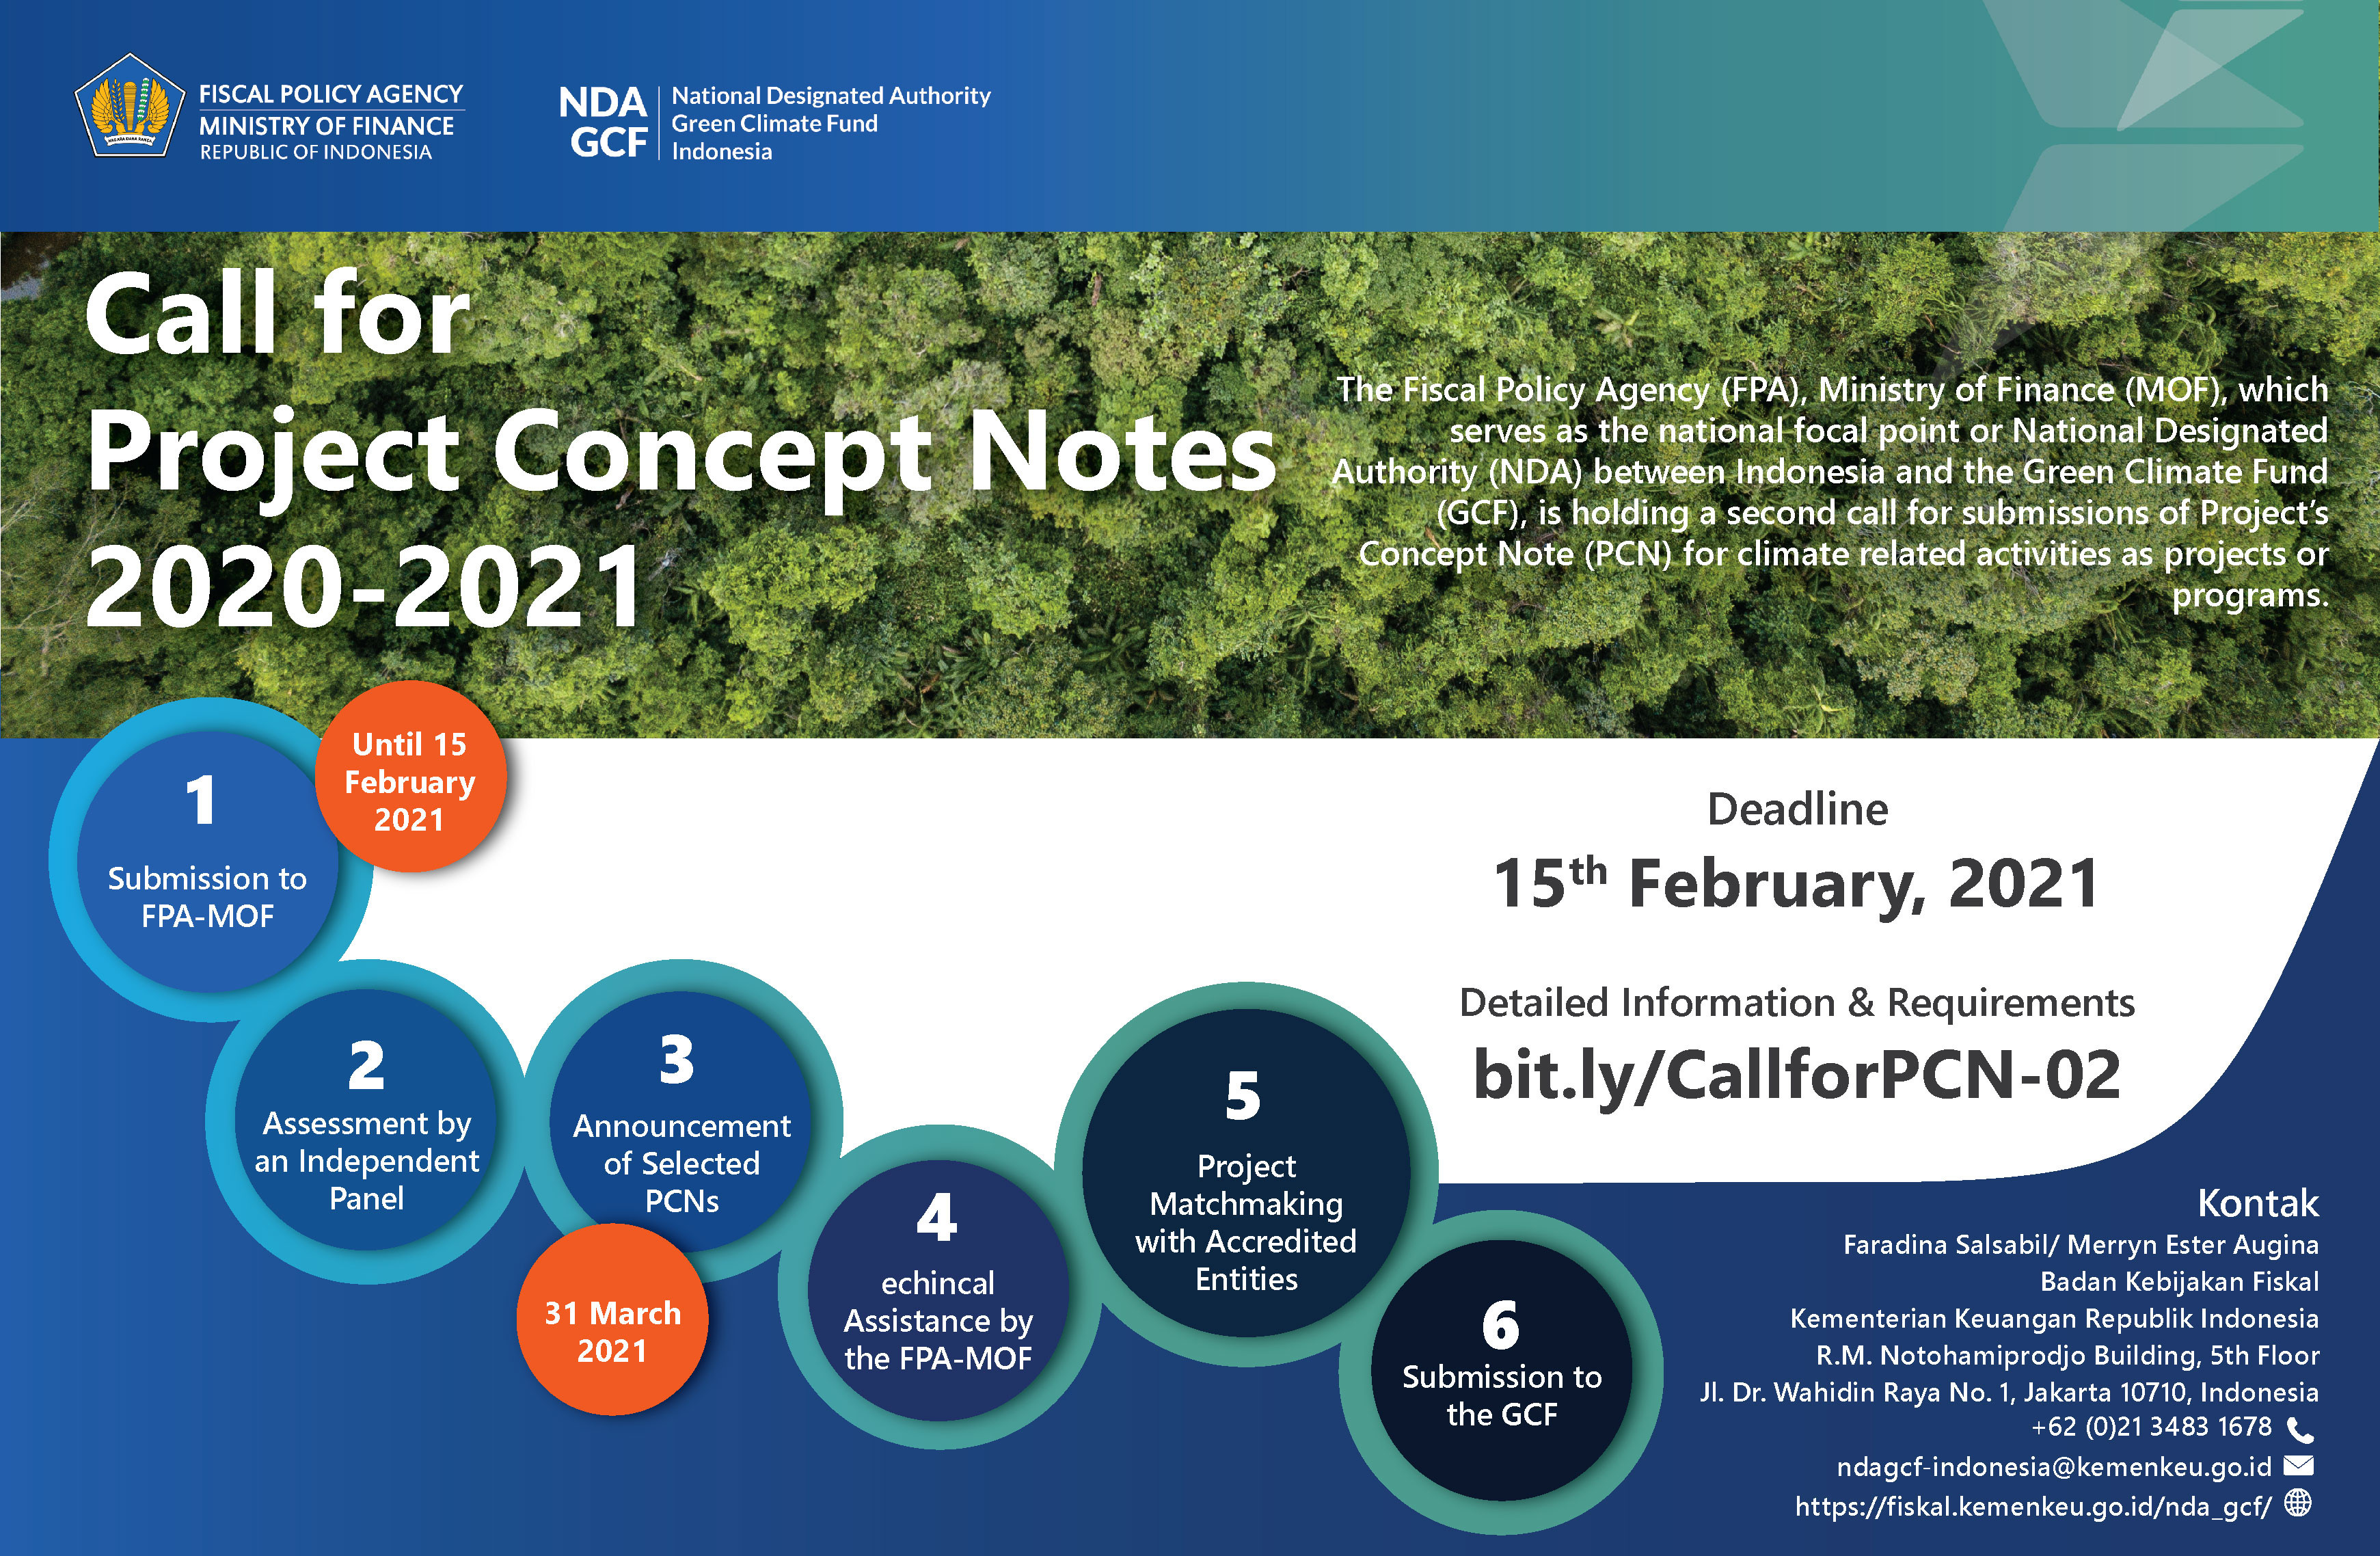 Call for Project Concept Notes on Potential Climate Change Programs/Projects in Indonesia 2020-2021